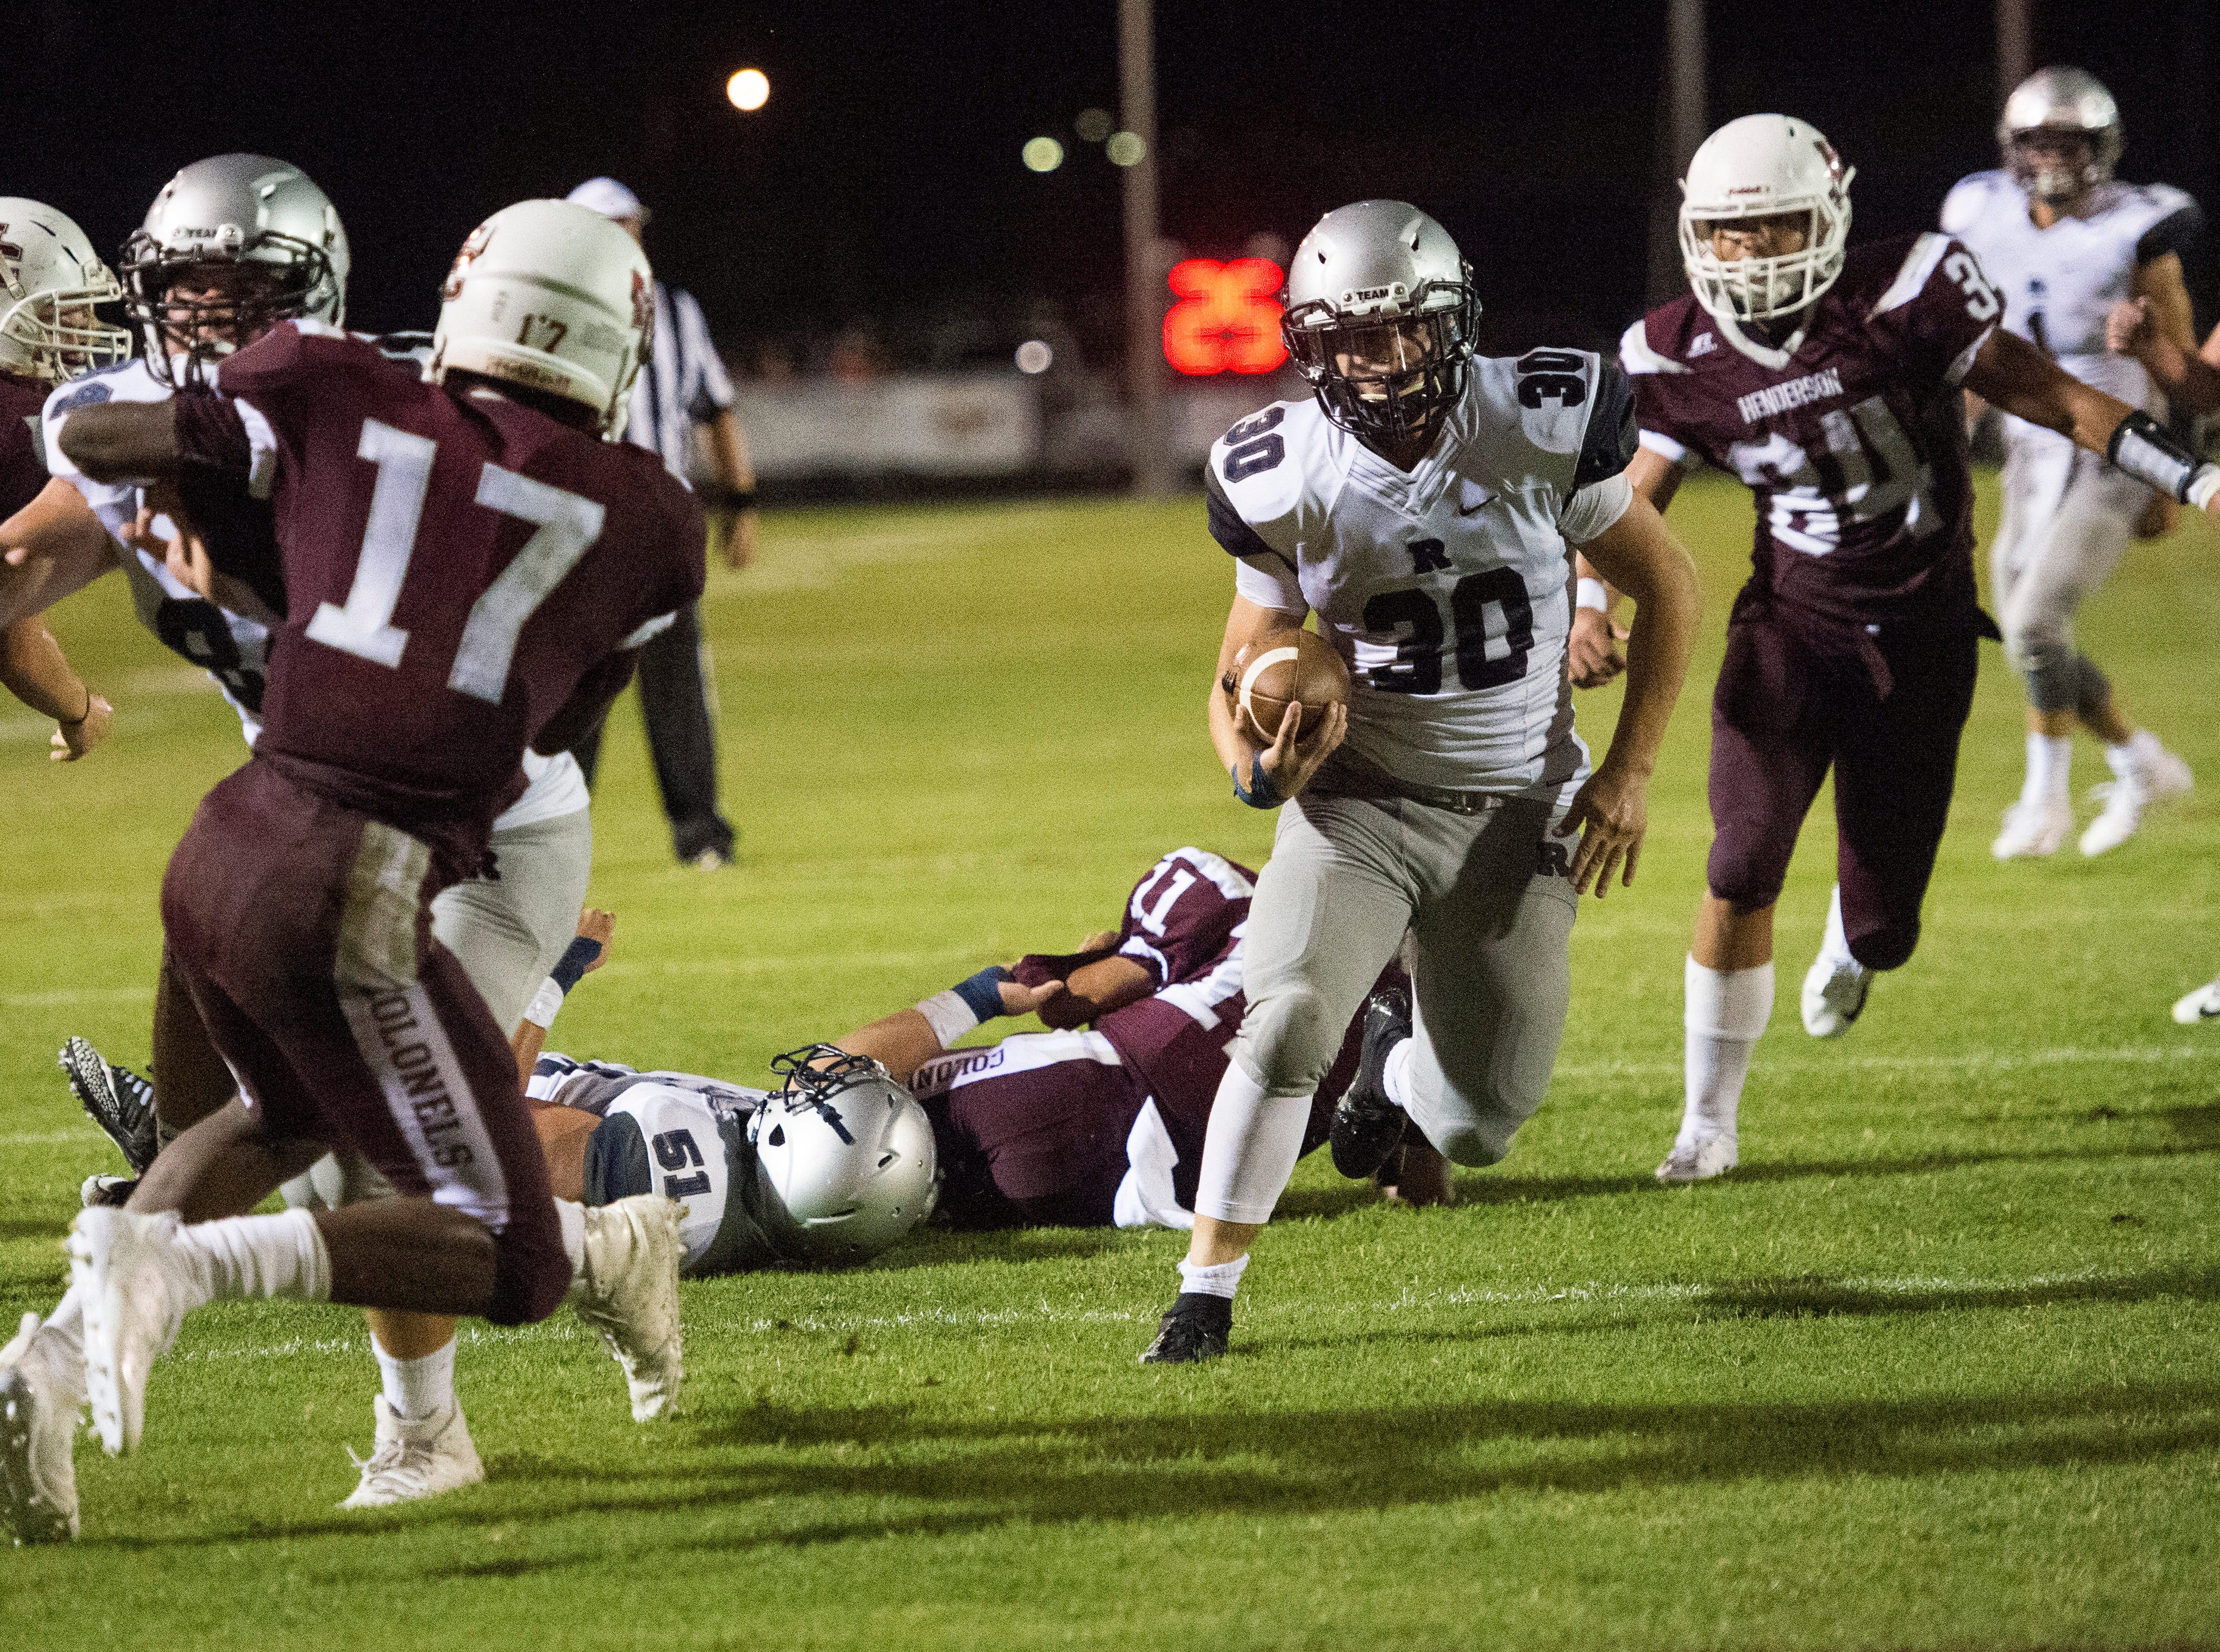 Reitz's Alex Mitchell (30) runs the ball though an opening during the Reitz vs Henderson County game at Colonel Stadium Friday, August 17, 2018. The Panthers defeated the Colonels 41-35 in the season opening game.